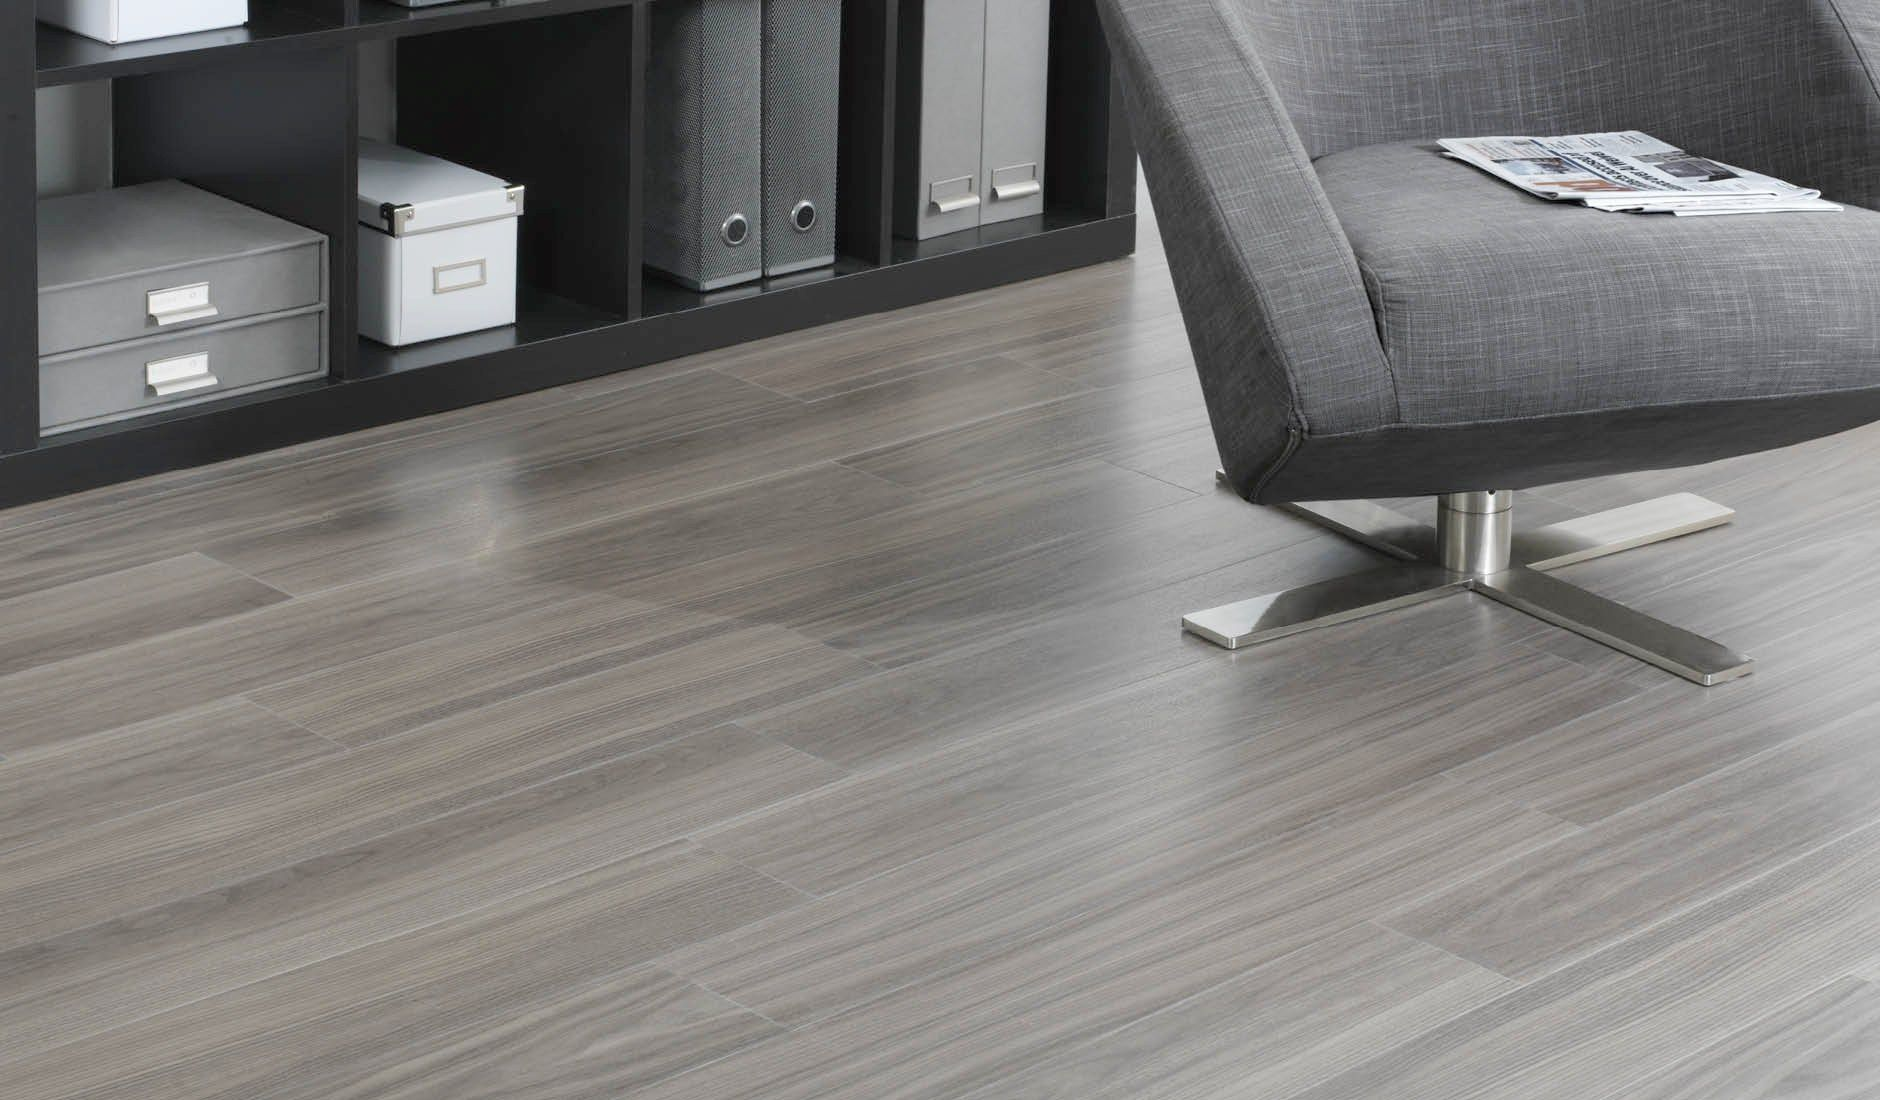 Carpet Tiles VS Laminate Flooring In Office (With images